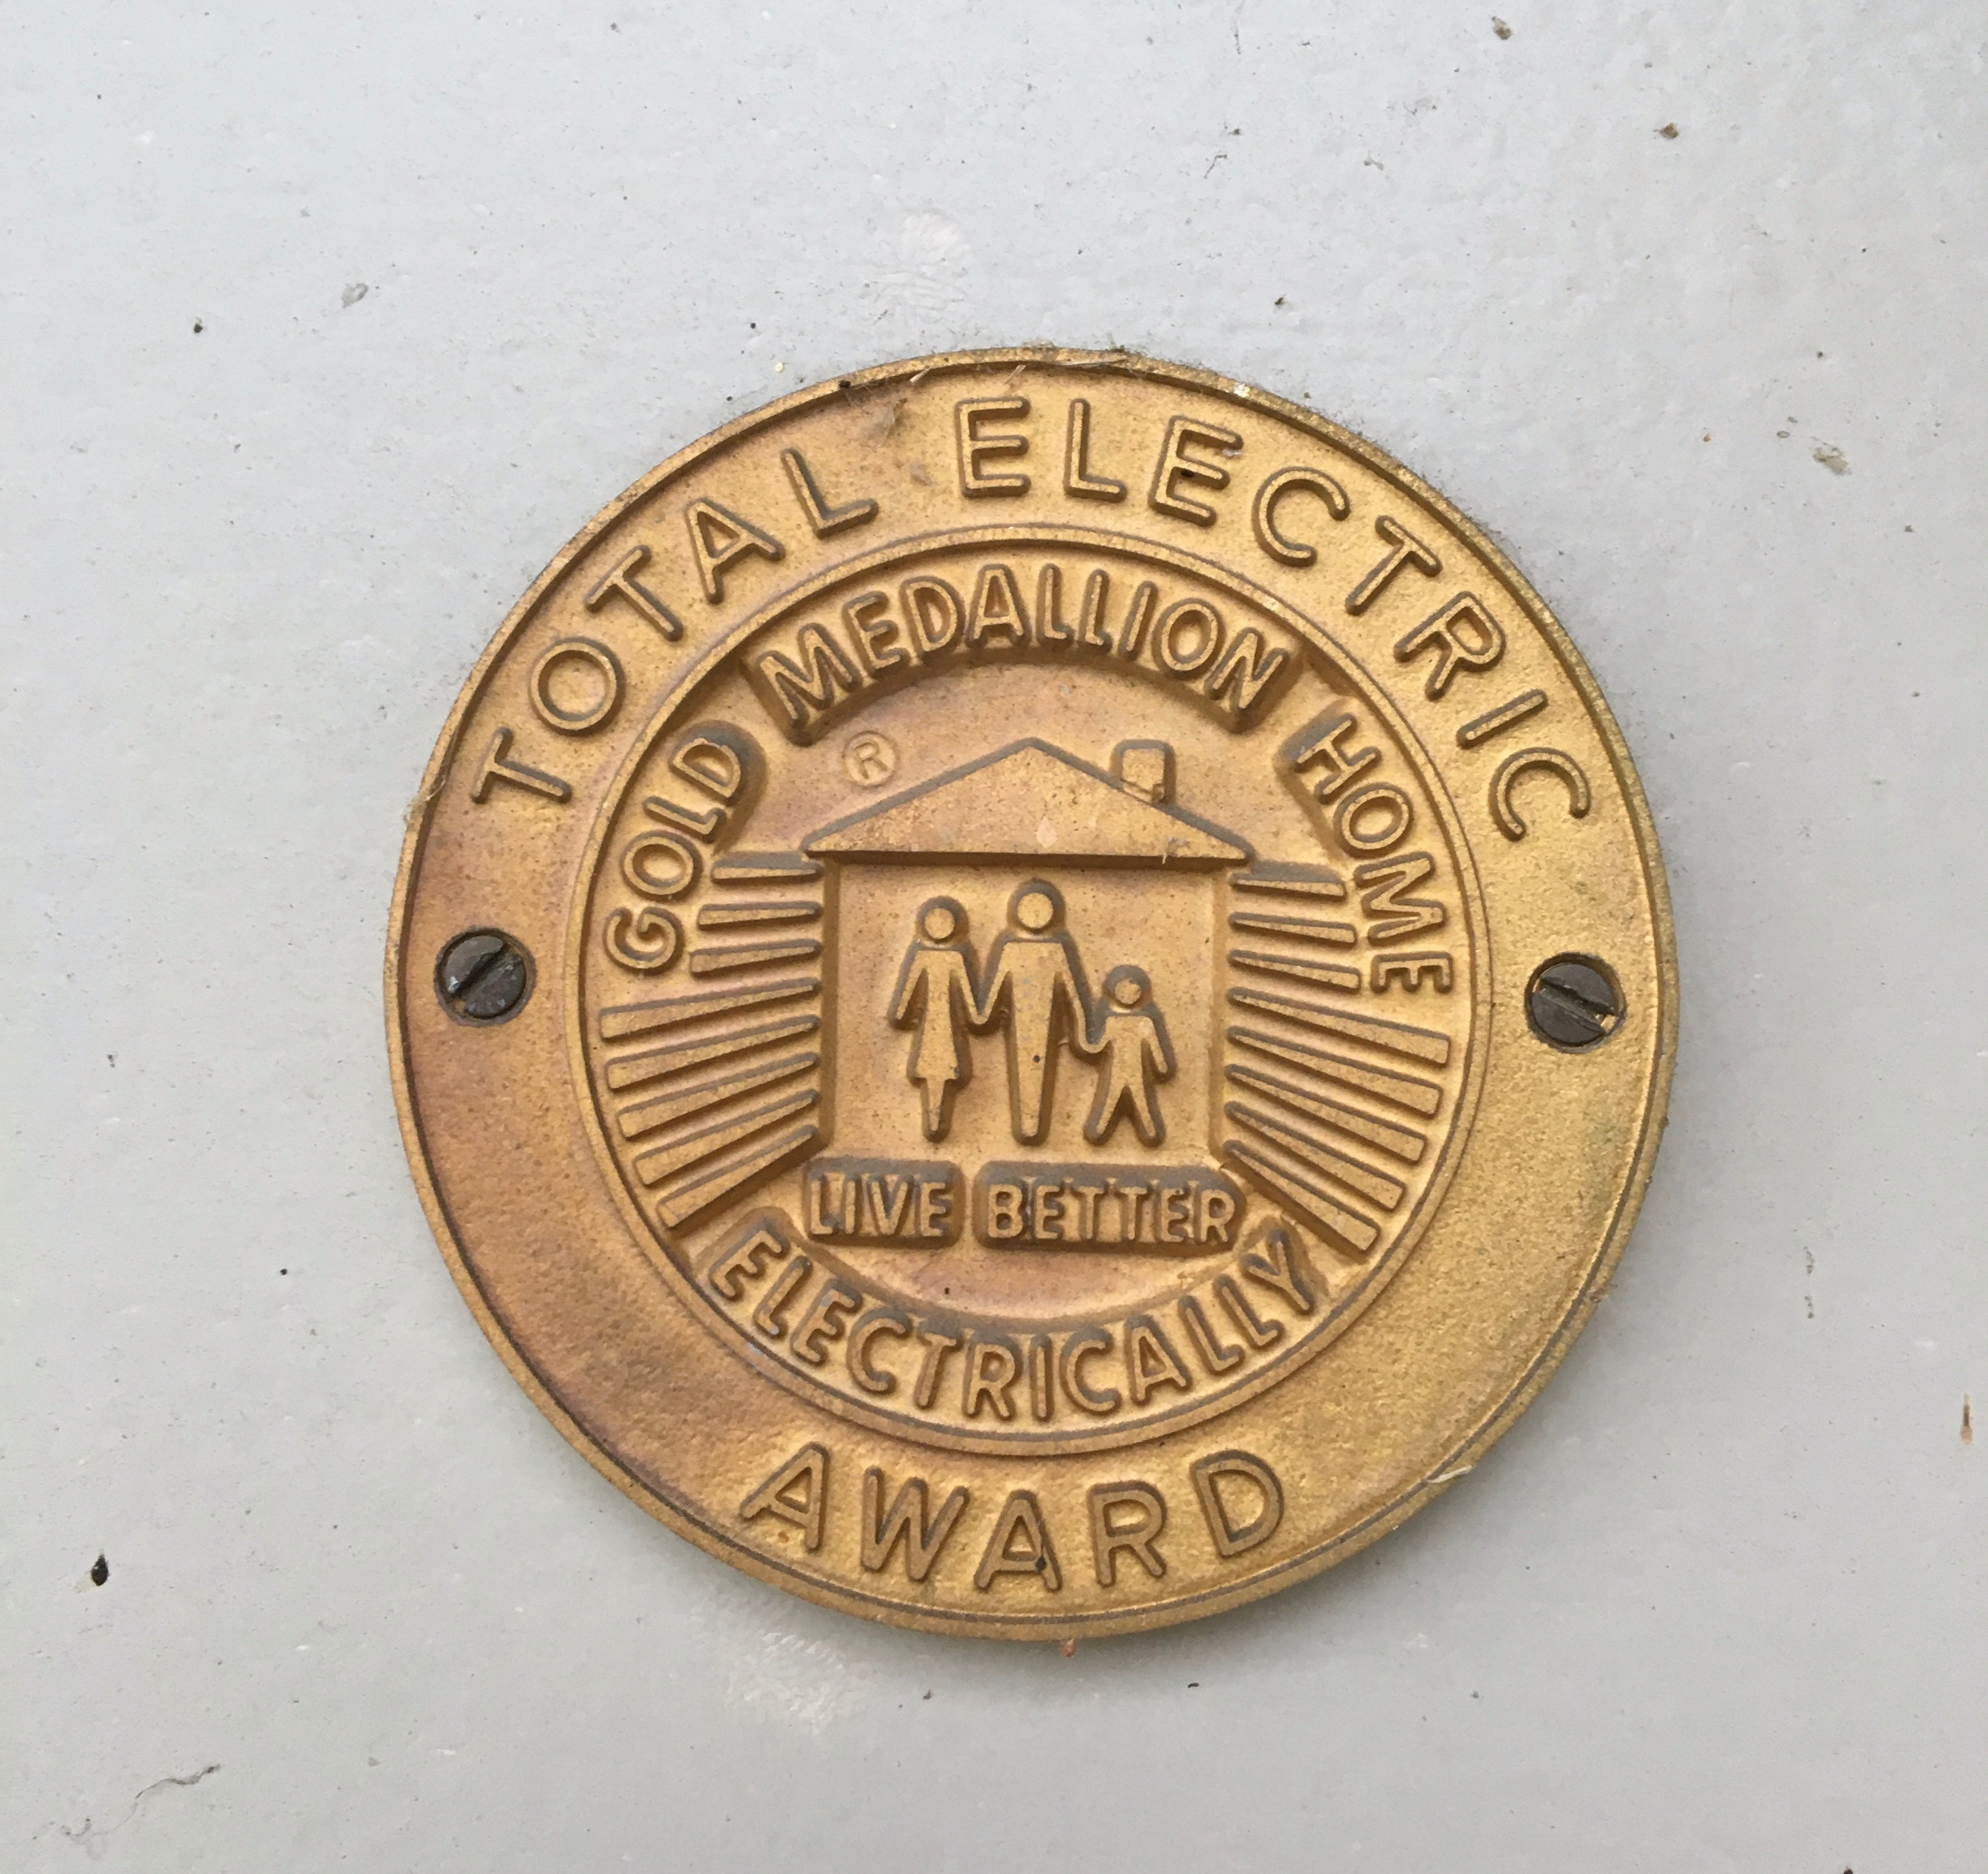 File Total Electric Gold Medallion Home Electrically Award Jpg Wikimedia Commons